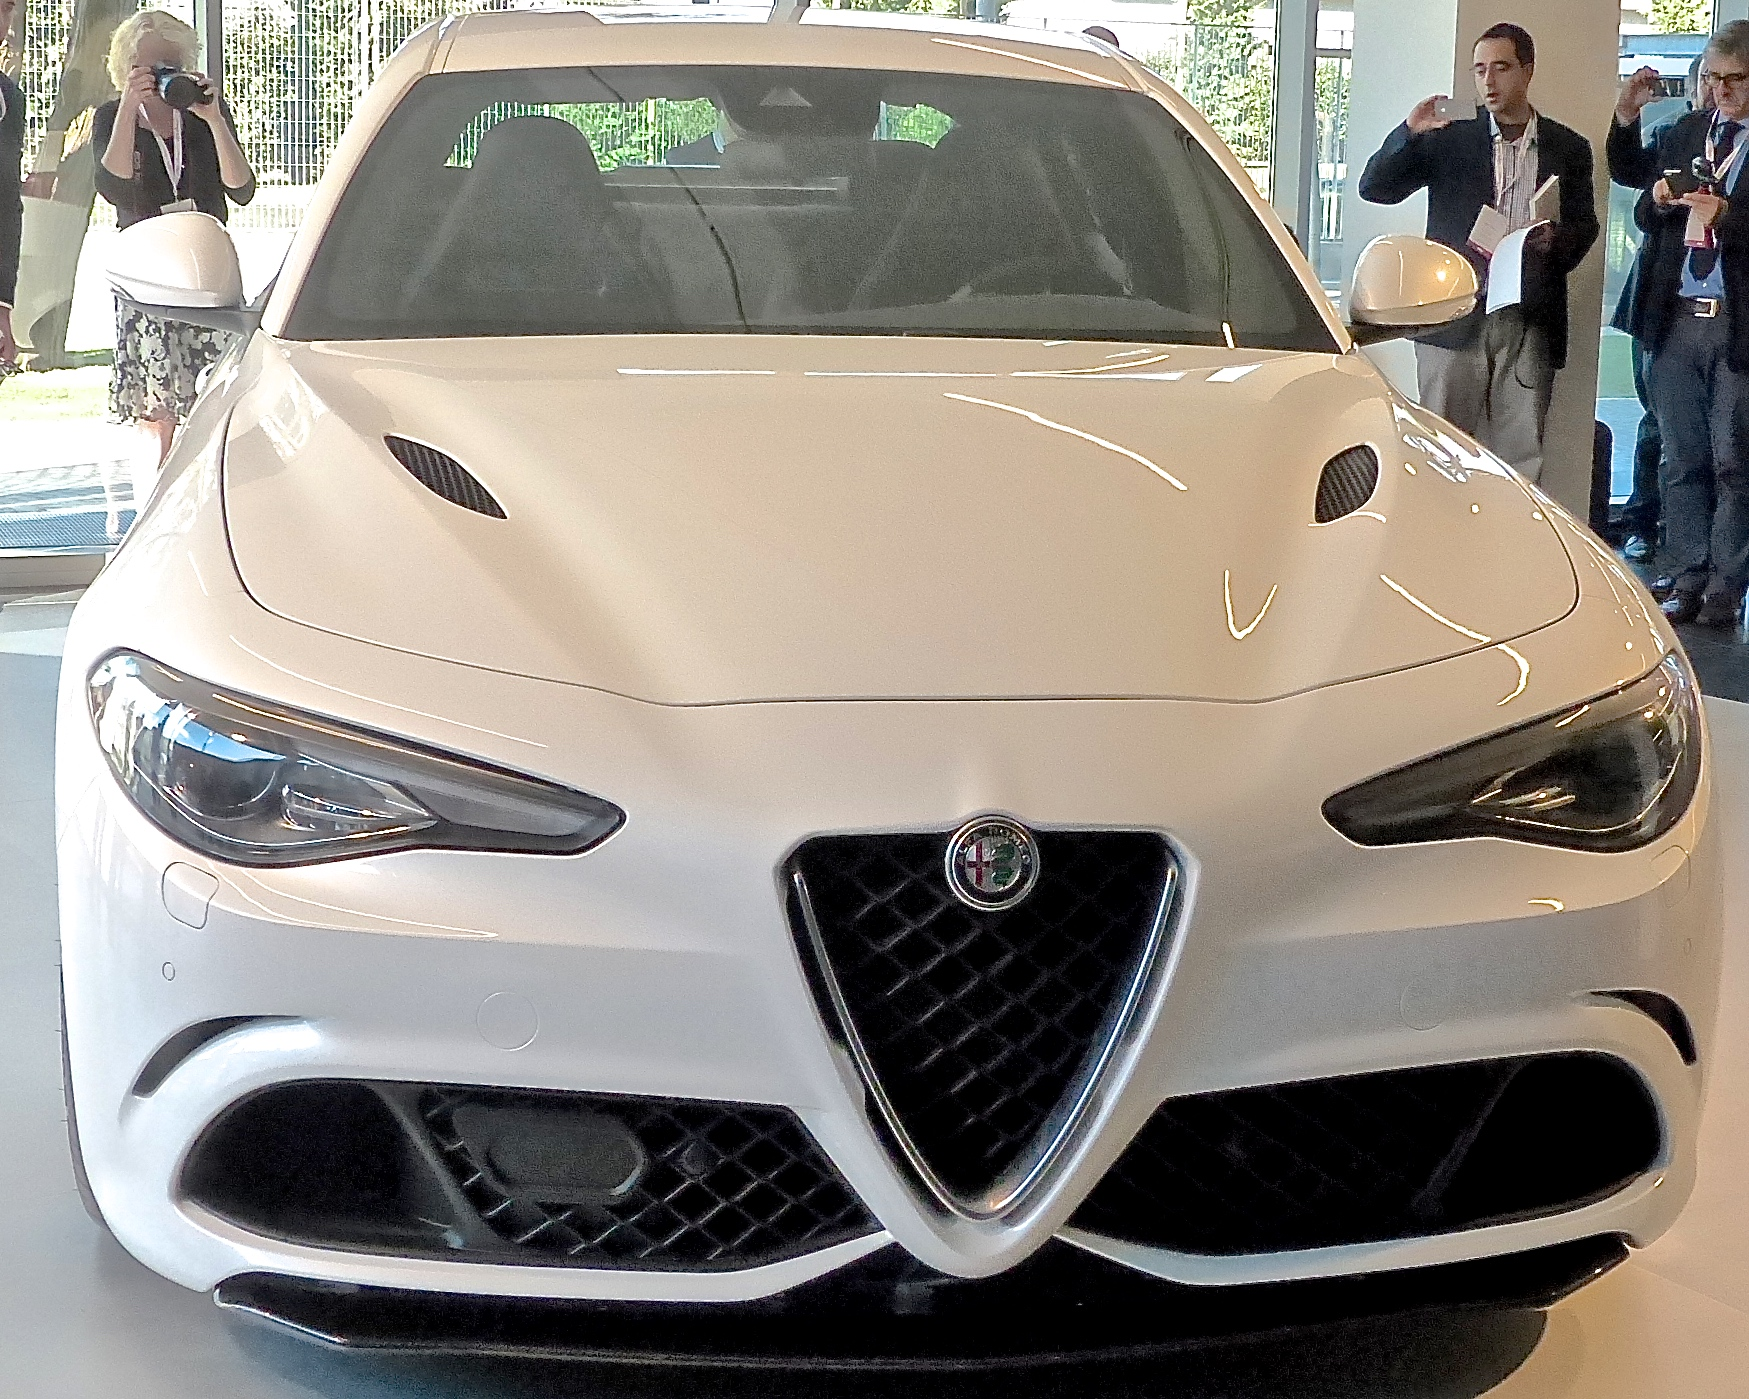 4c car with New Car Introductions on E8 B6 85 E9 AB 98 E6 B8 85 E7 82 AB E9 85 B7 E5 A3 81 E7 BA B8 additionally 10 Acura Logo Wallpaper 8 further Alfa Romeo 8c moreover New Car Introductions in addition Alfa Romeo Gtv.